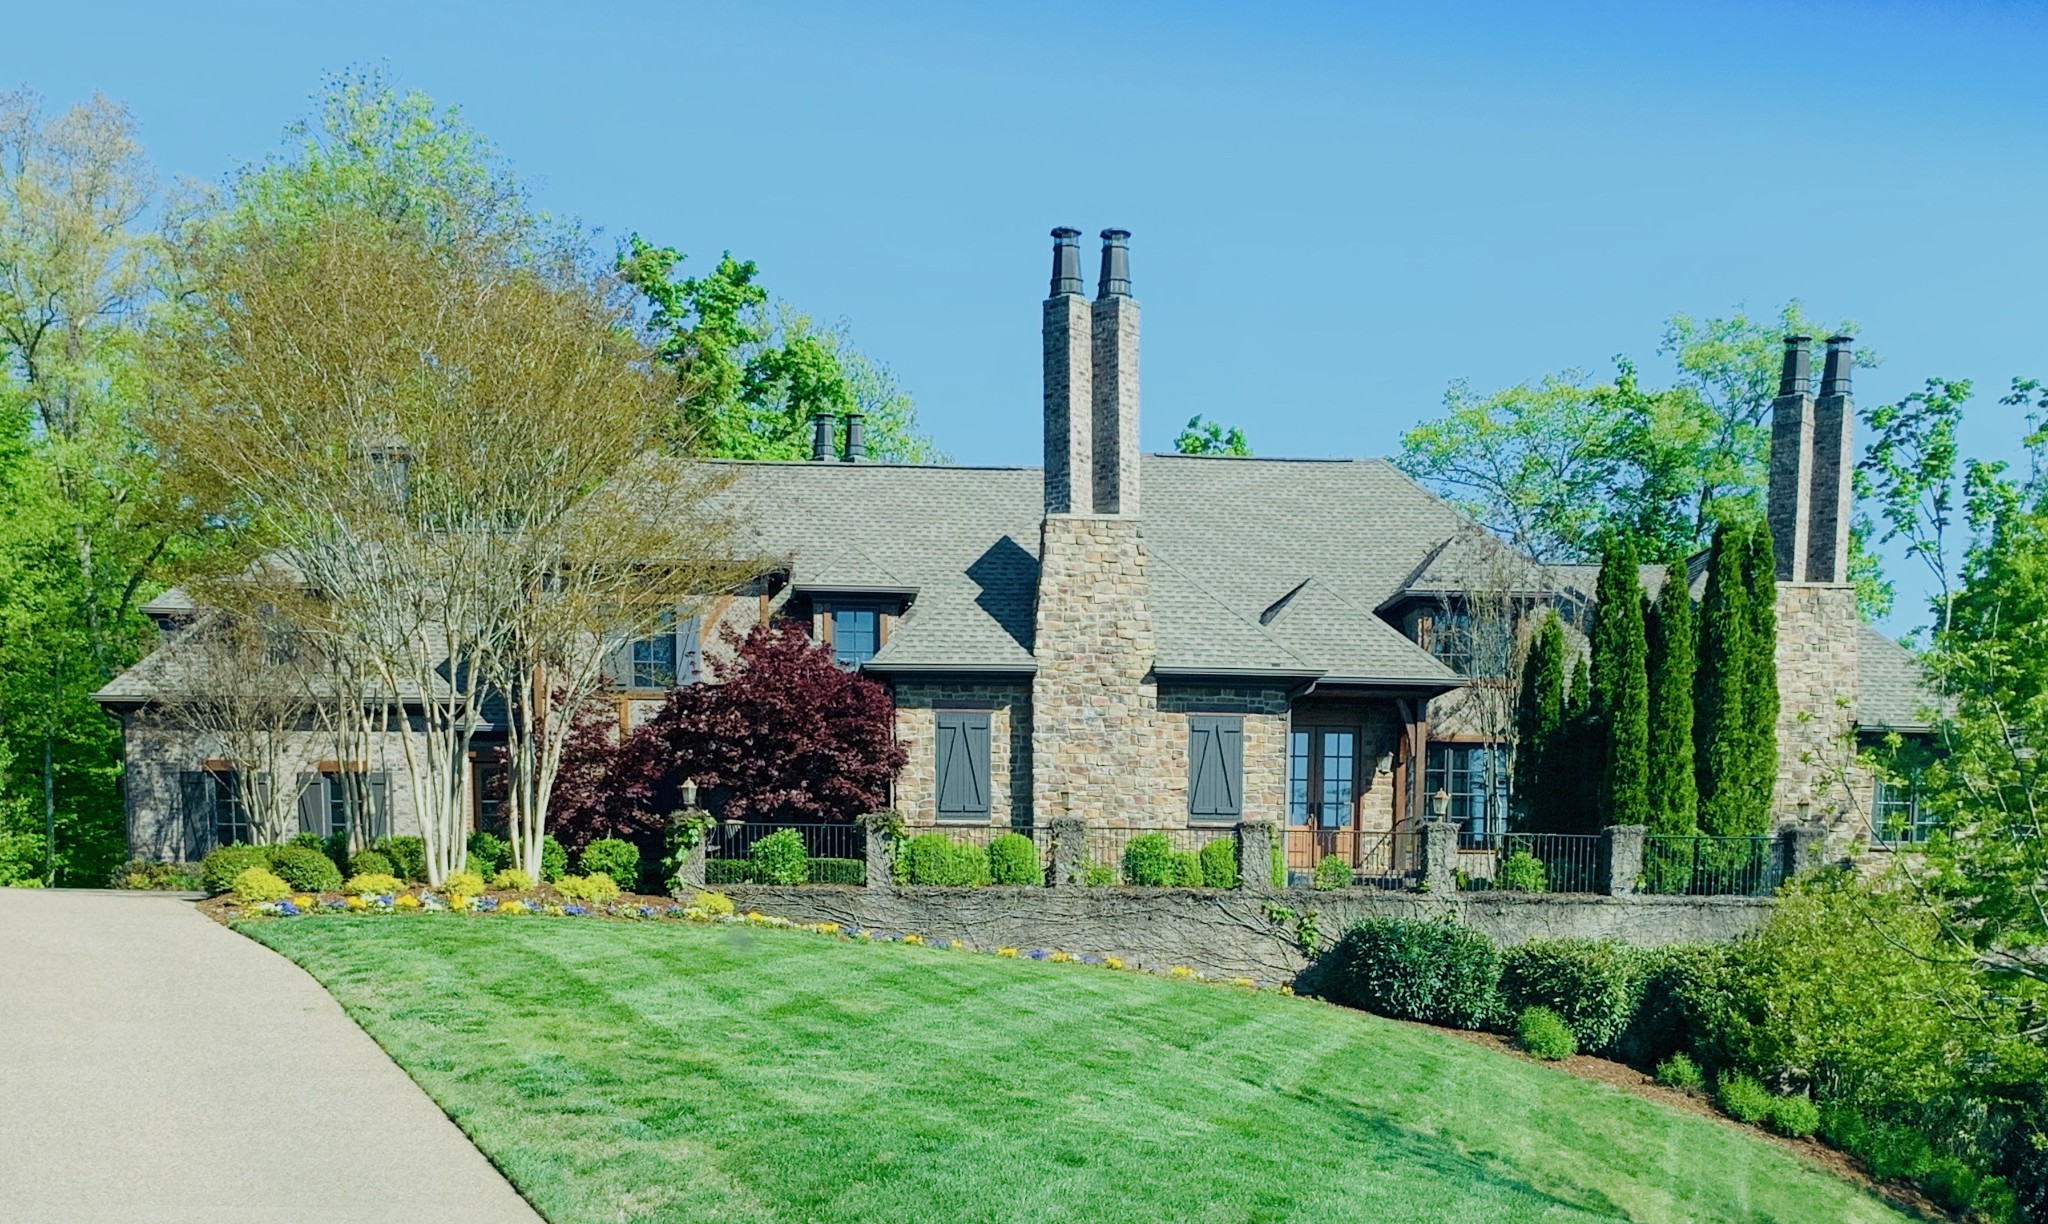 COMING SOON:  SHOWINGS WILL BEGIN JUNE 9th.  This 2.3 million dollar build is arguably the best value in Governors Club.  NEW PICTURES COMING SOON. Located on a private cul de sac w/4 oversized garages. New granite epoxy floors on main level.  Huge basement w/incredible guest quarters incl kitchen, media room & gym. Fam room has dble-height ceilings and connects to kitchen w/high-end appl, 2 dishwashers & 2 islands w/quartz countertops.  MORE INFORMATION WHEN LISTING BECOMES ACTIVE.